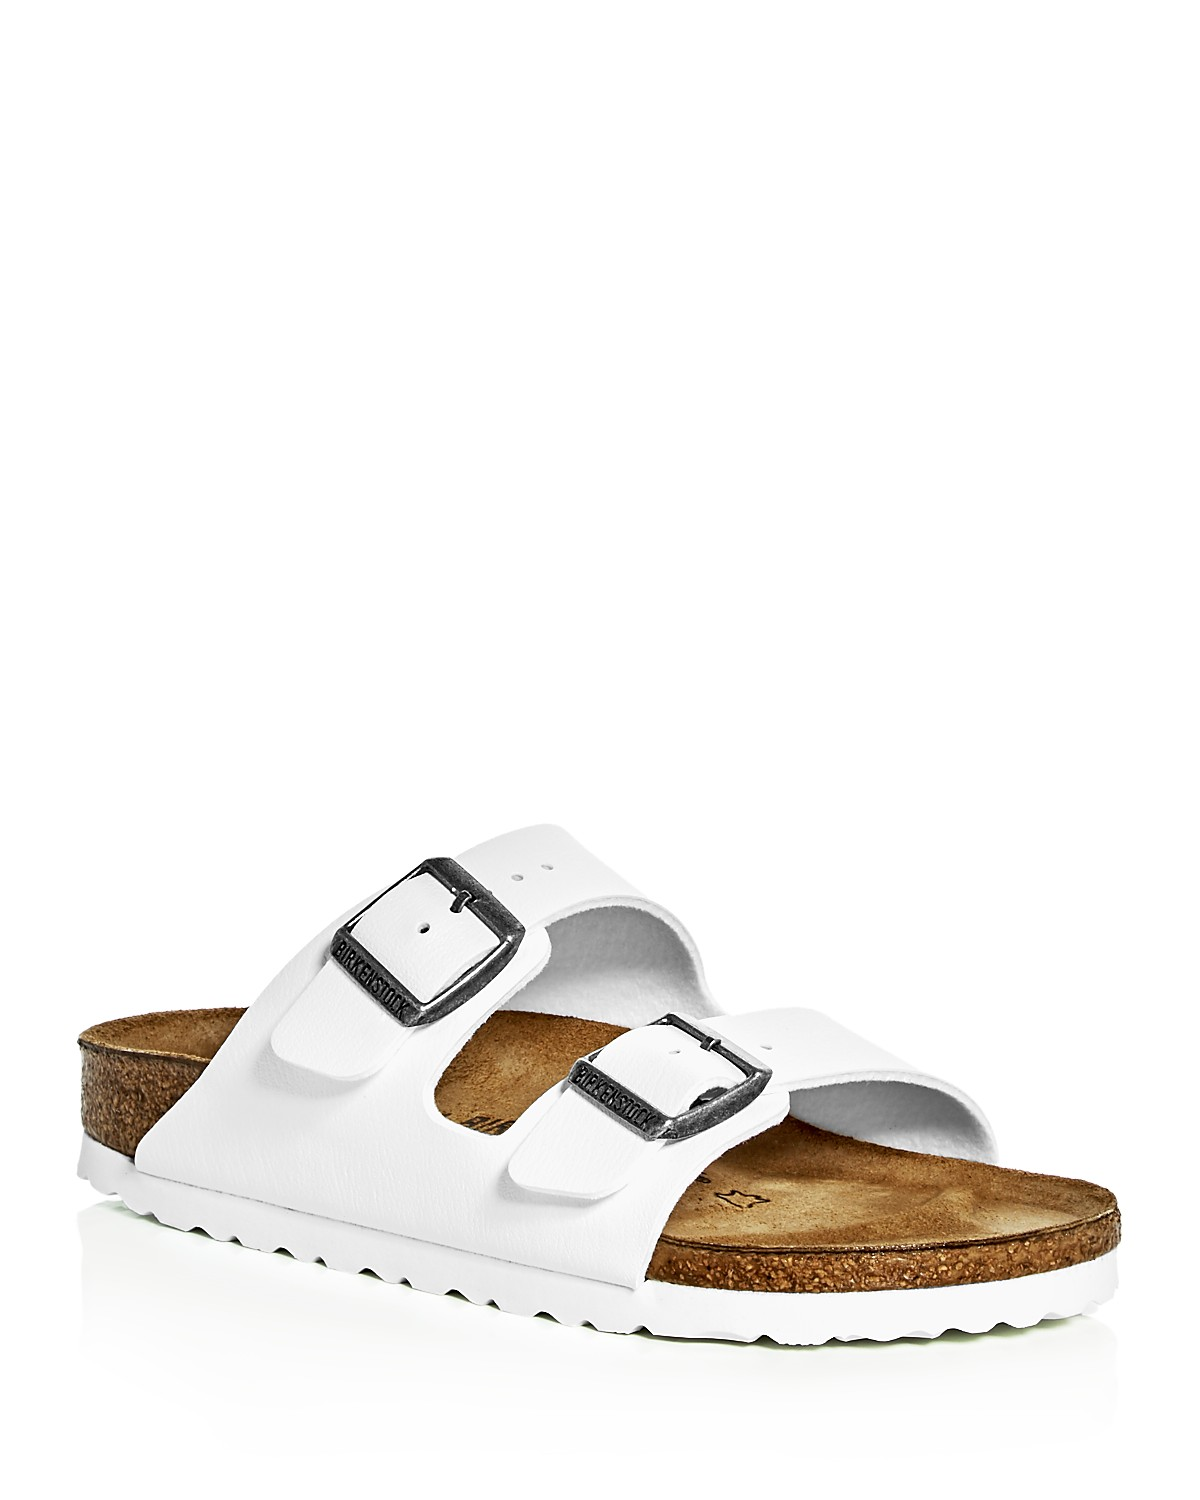 - ARIZONA SANDALS / Birkenstock available at Bloomingdales $95